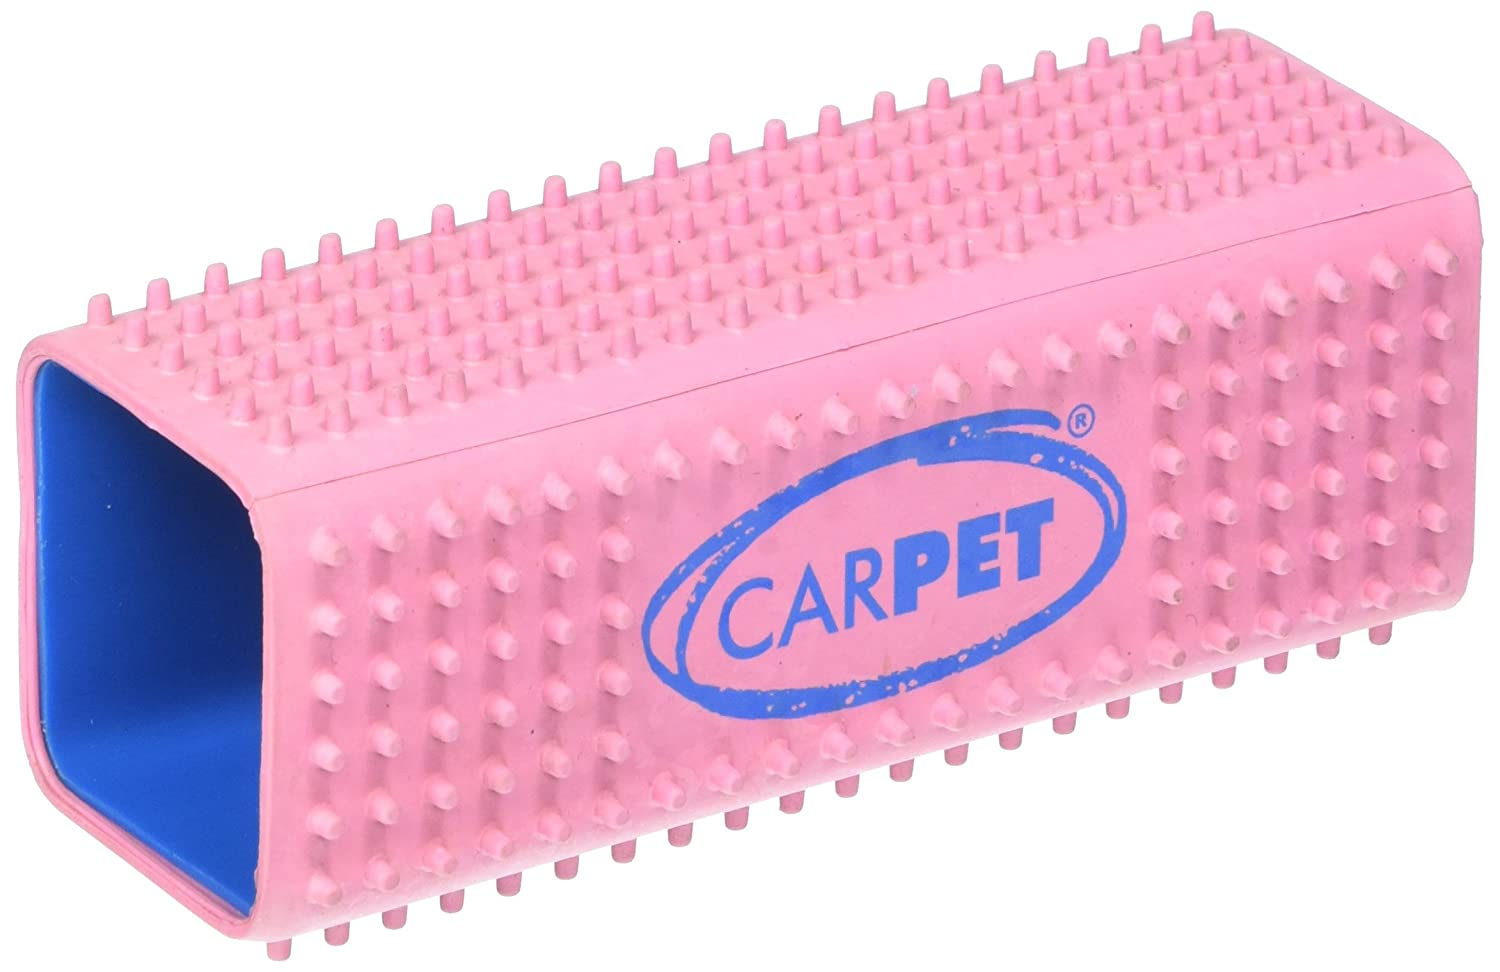 The CarPET - Pet Hair Remover Boutique Pink Pet Hair Remover PET1PINK